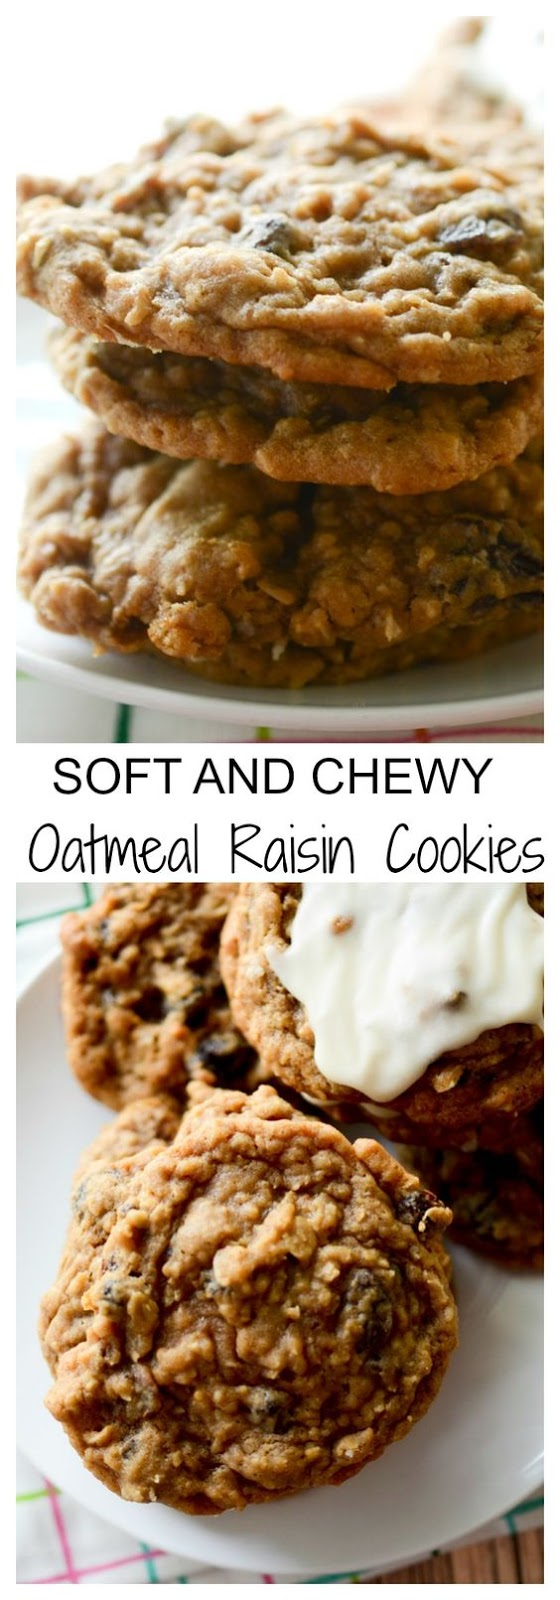 I have to back up a couple weeks here on these cookies. The grocery store here has some of the best oatmeal raisin cookies I've ever had in my life. 2 weeks ago, someone let me try them. The cookies